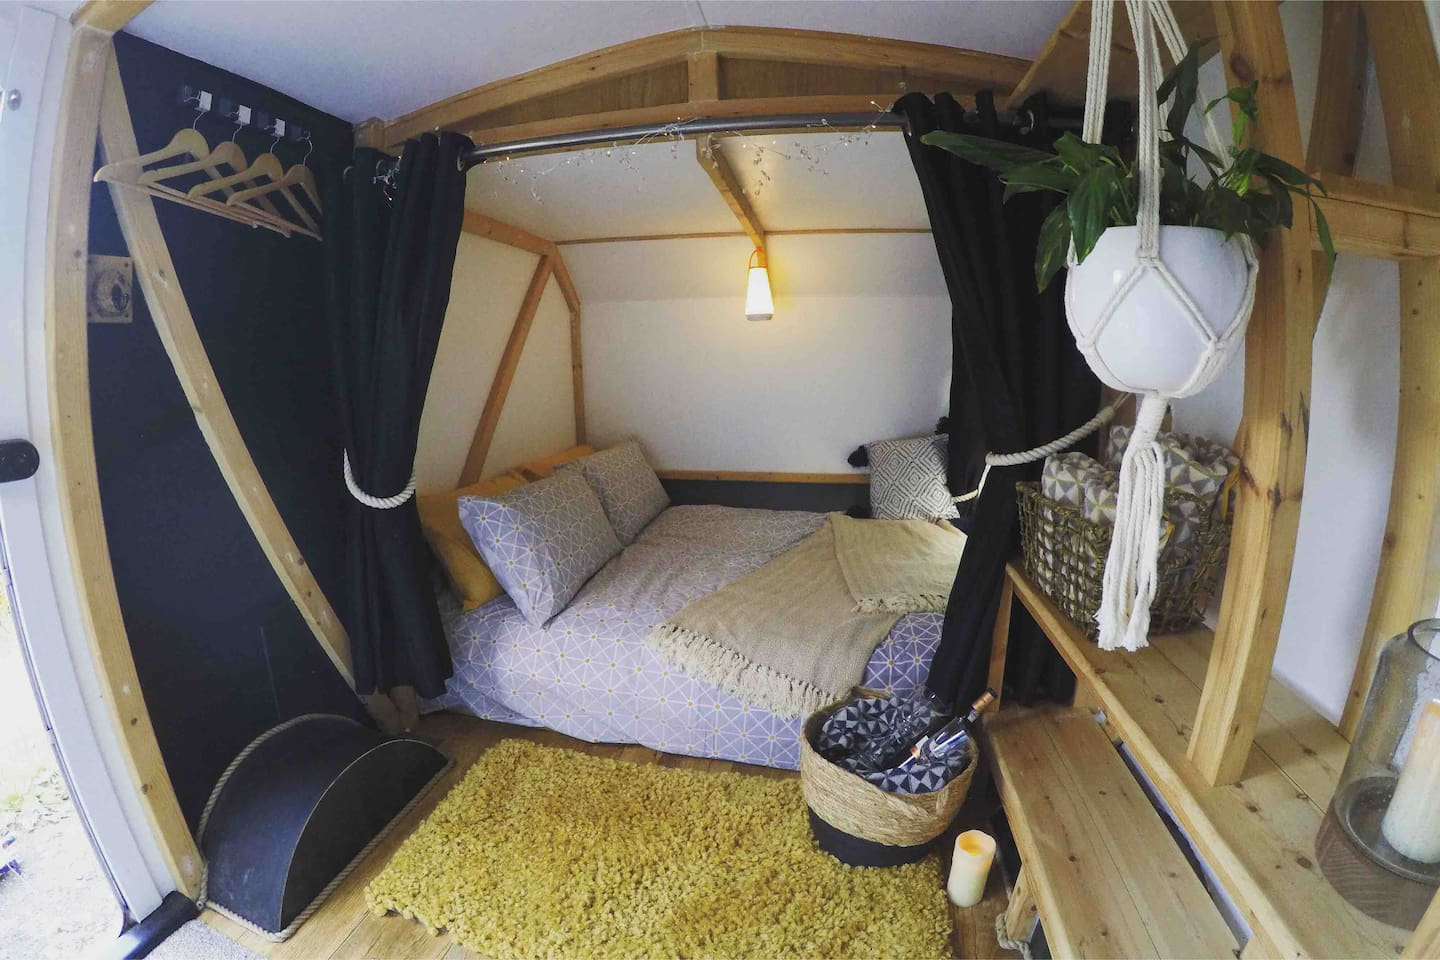 Cosy sleeping pod 'The Black Bean' - Tiny but well equipped total space of approx 2mx3m